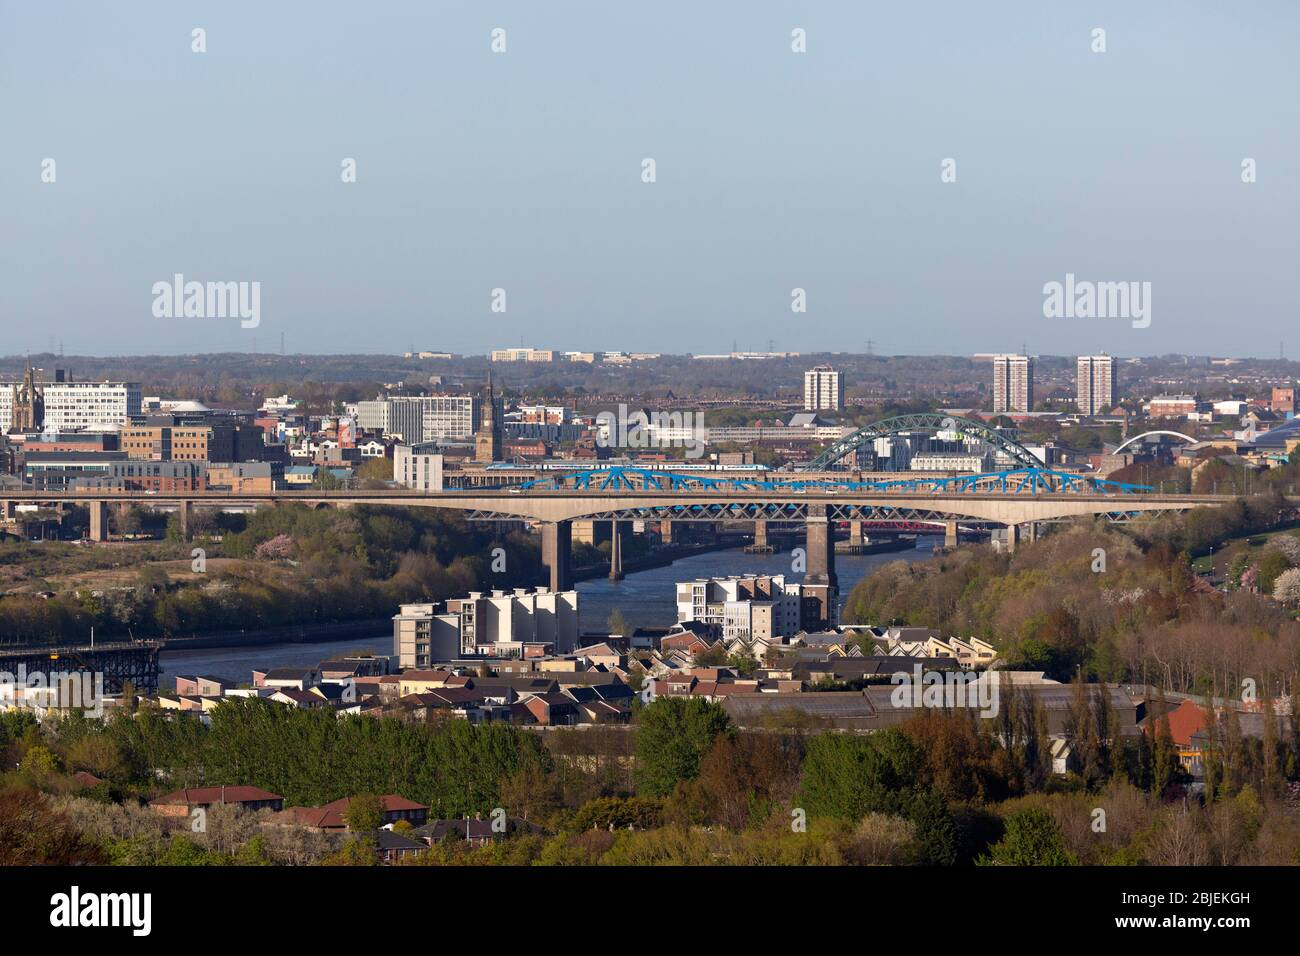 A cityscape of Newcastle upon Tyne, England. The Redheugh Bridge spans the River Tyne between Newcastle and Gateshead. Stock Photo